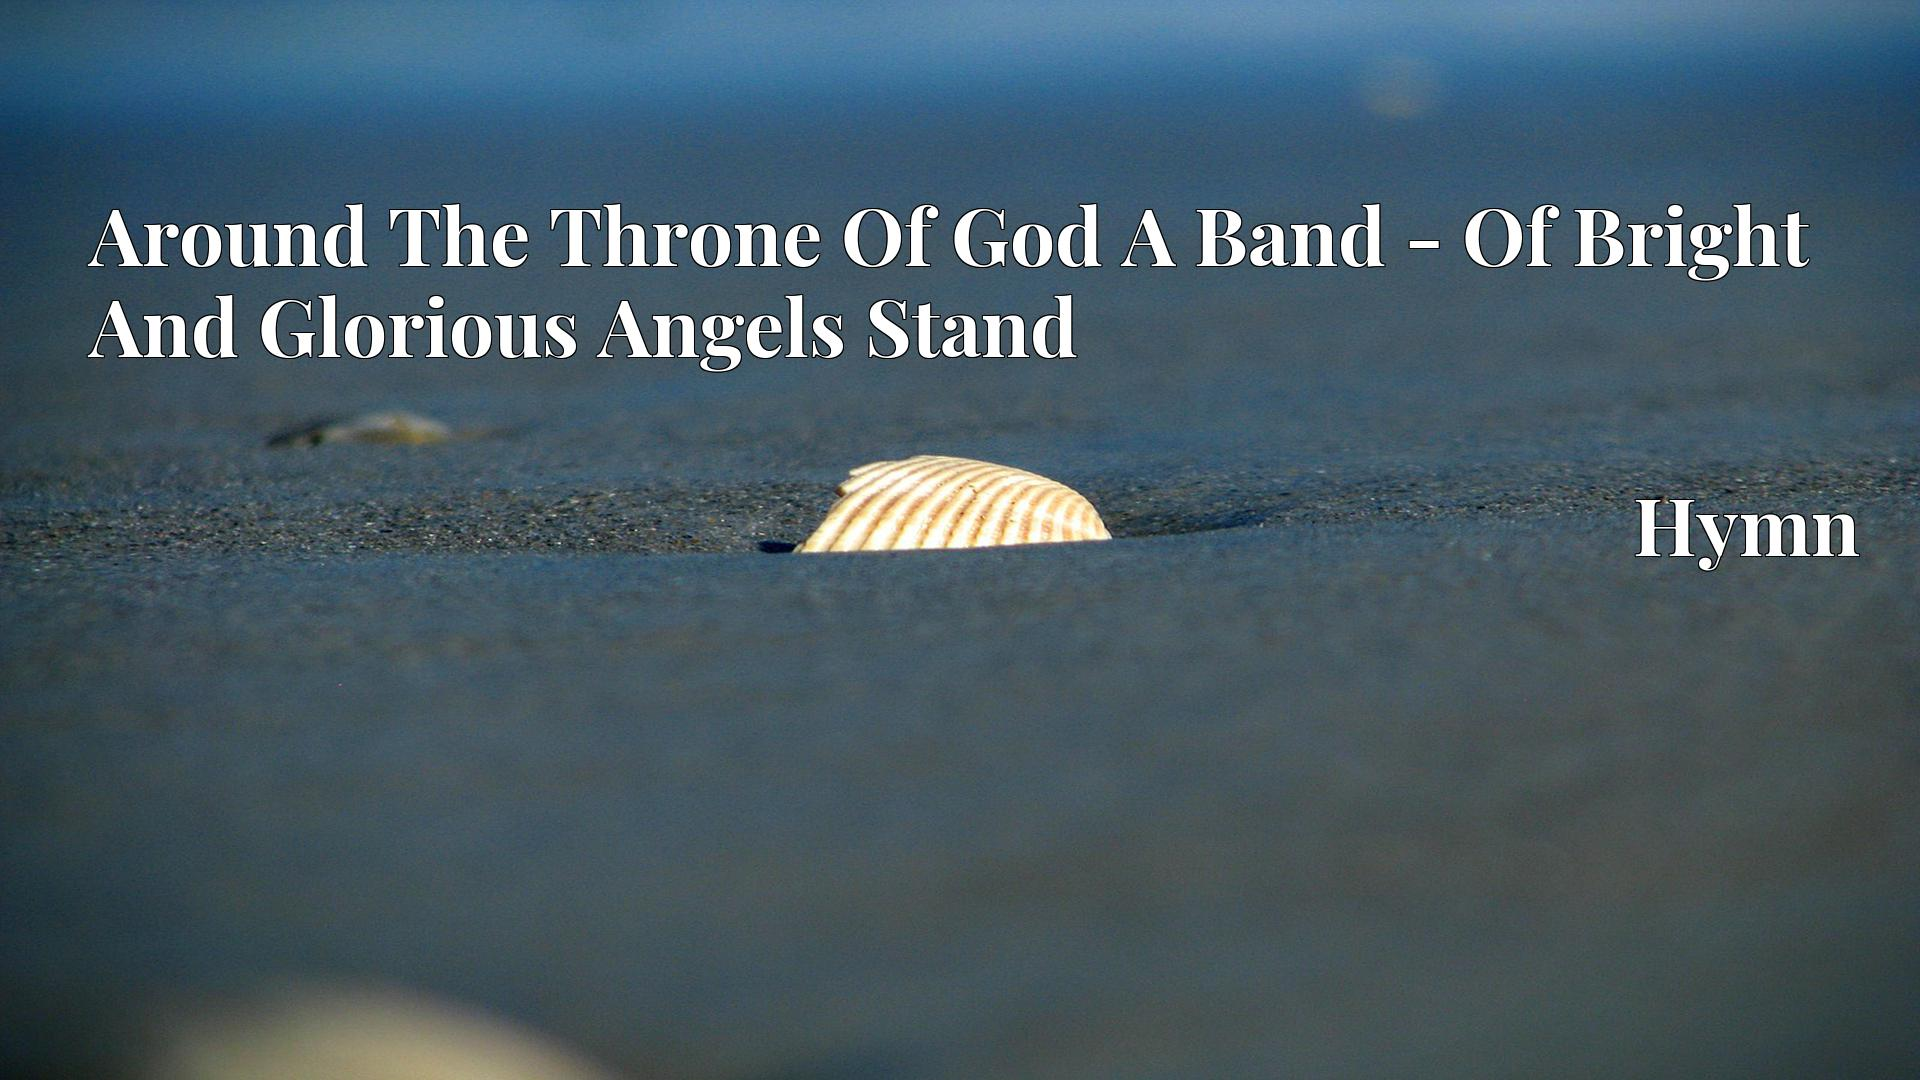 Around The Throne Of God A Band - Of Bright And Glorious Angels Stand - Hymn